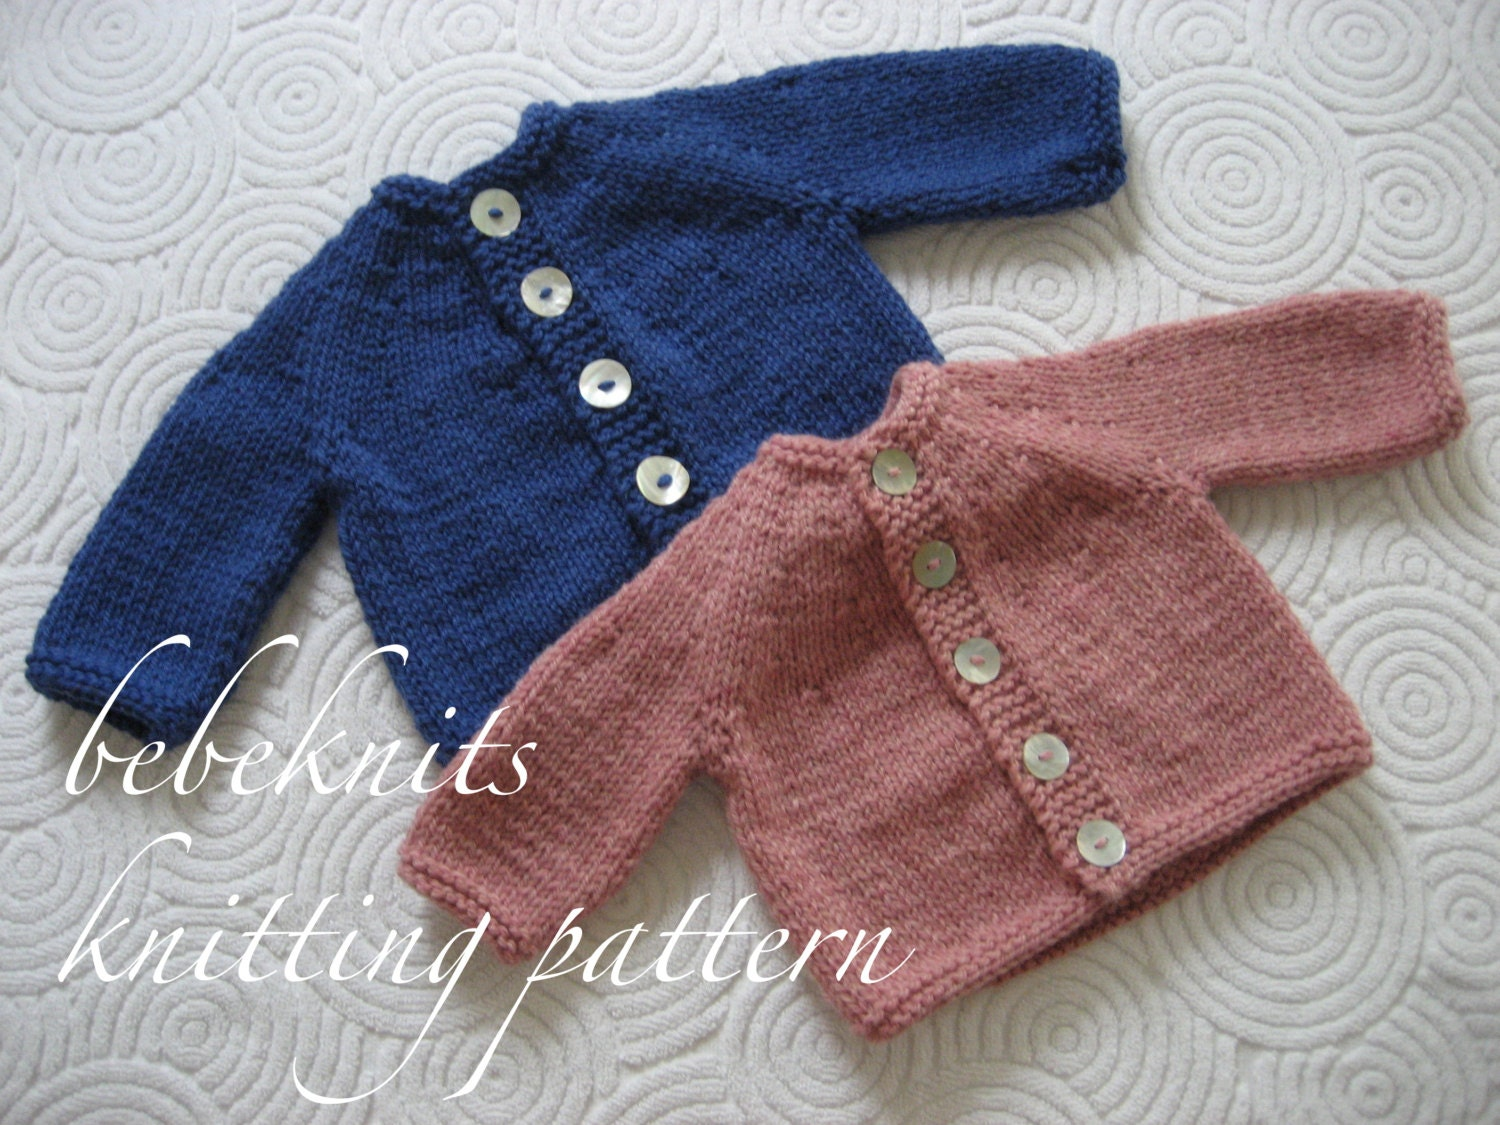 Bebeknits Simple Round Yoke Baby Cardigan Knitting Pattern from ...